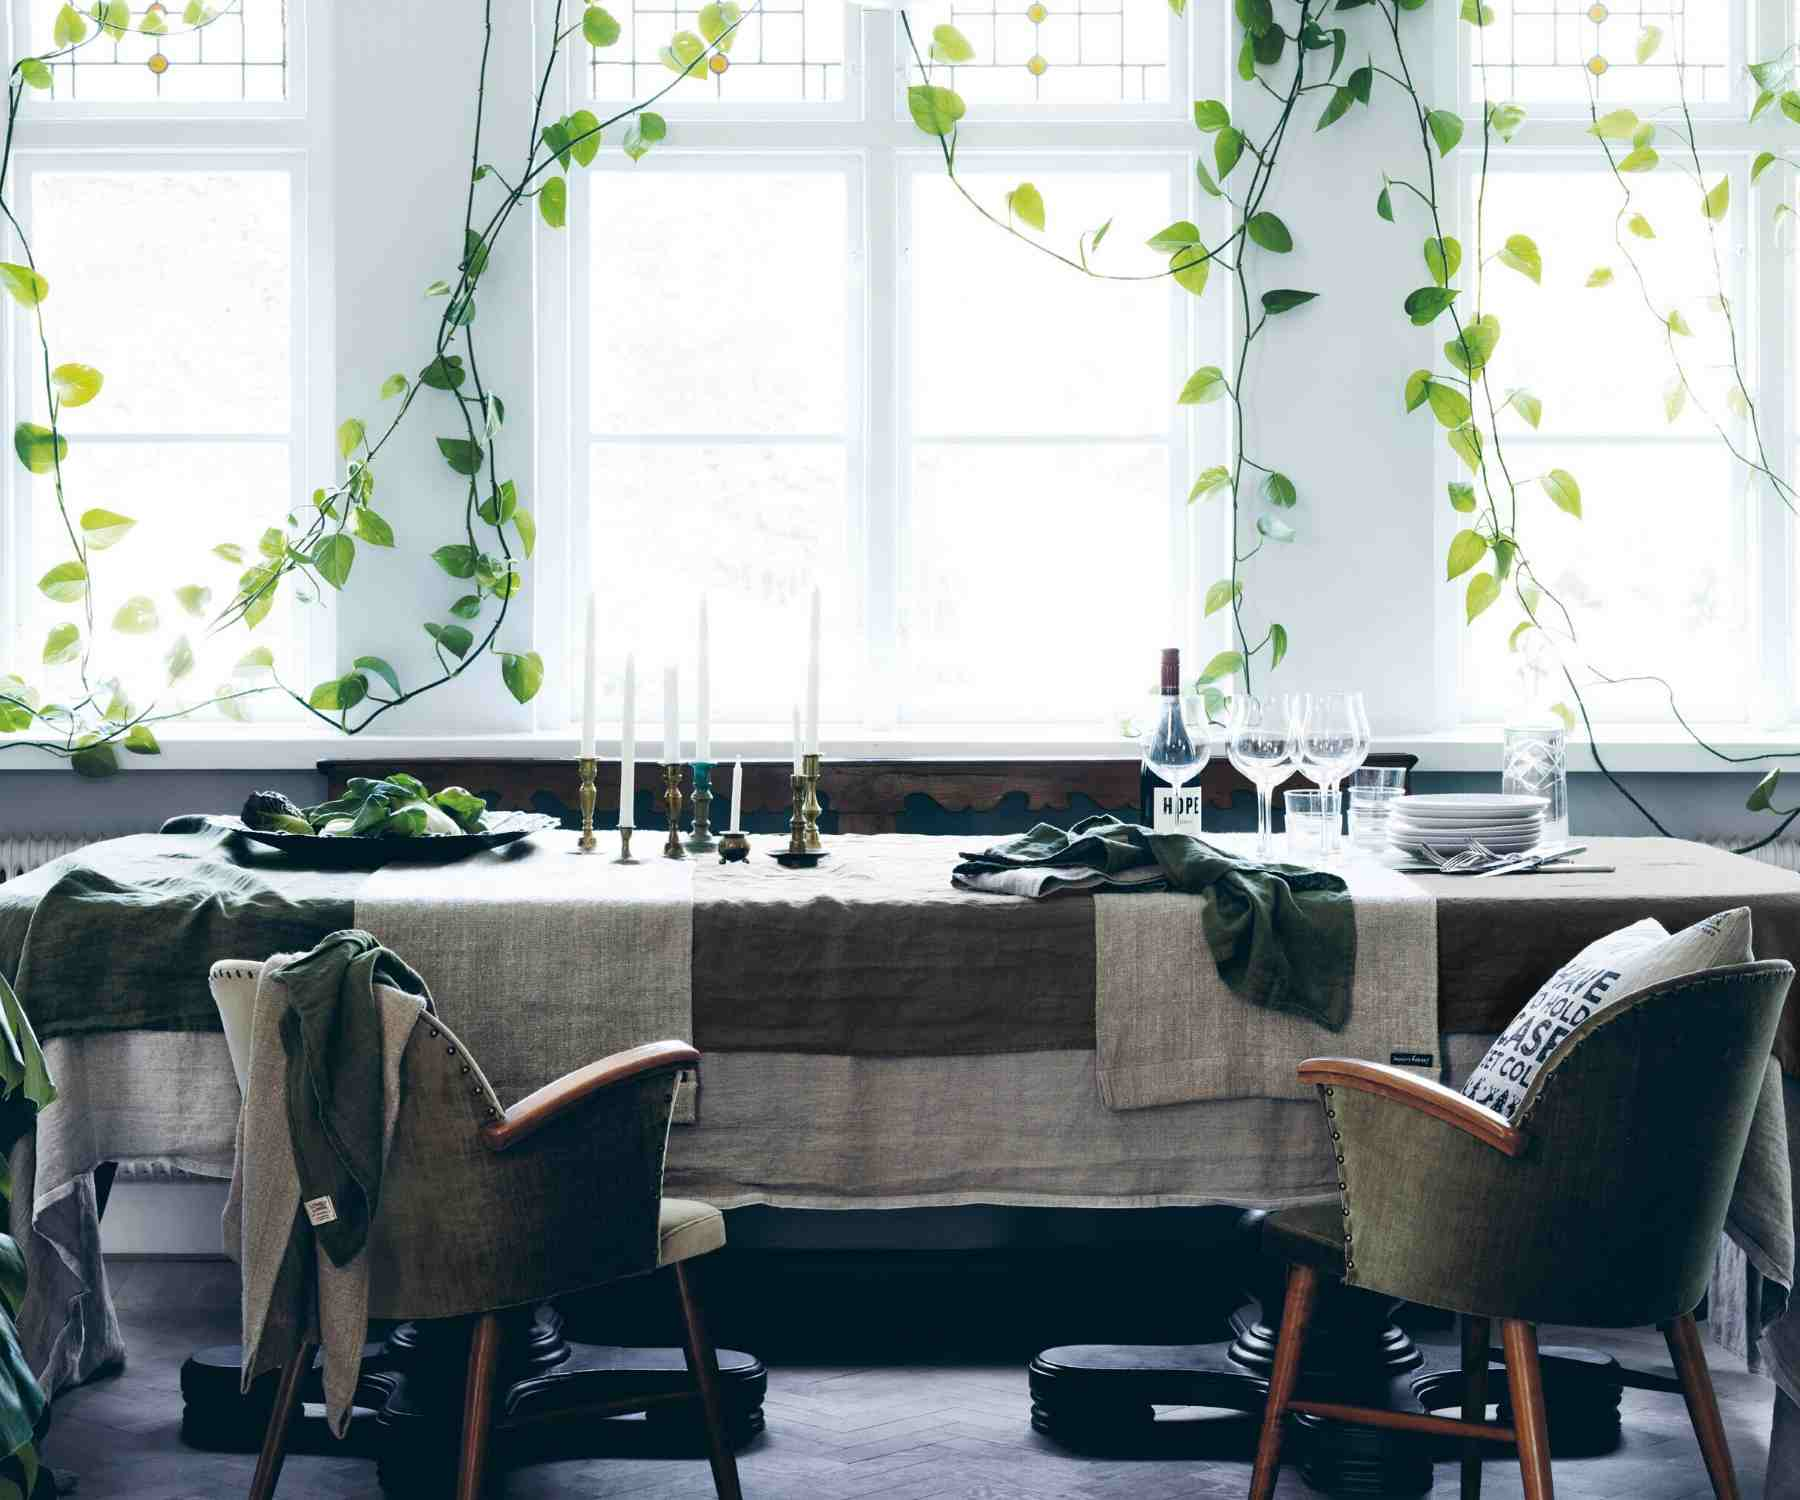 Large table with layered linen tablecloths in front of large window